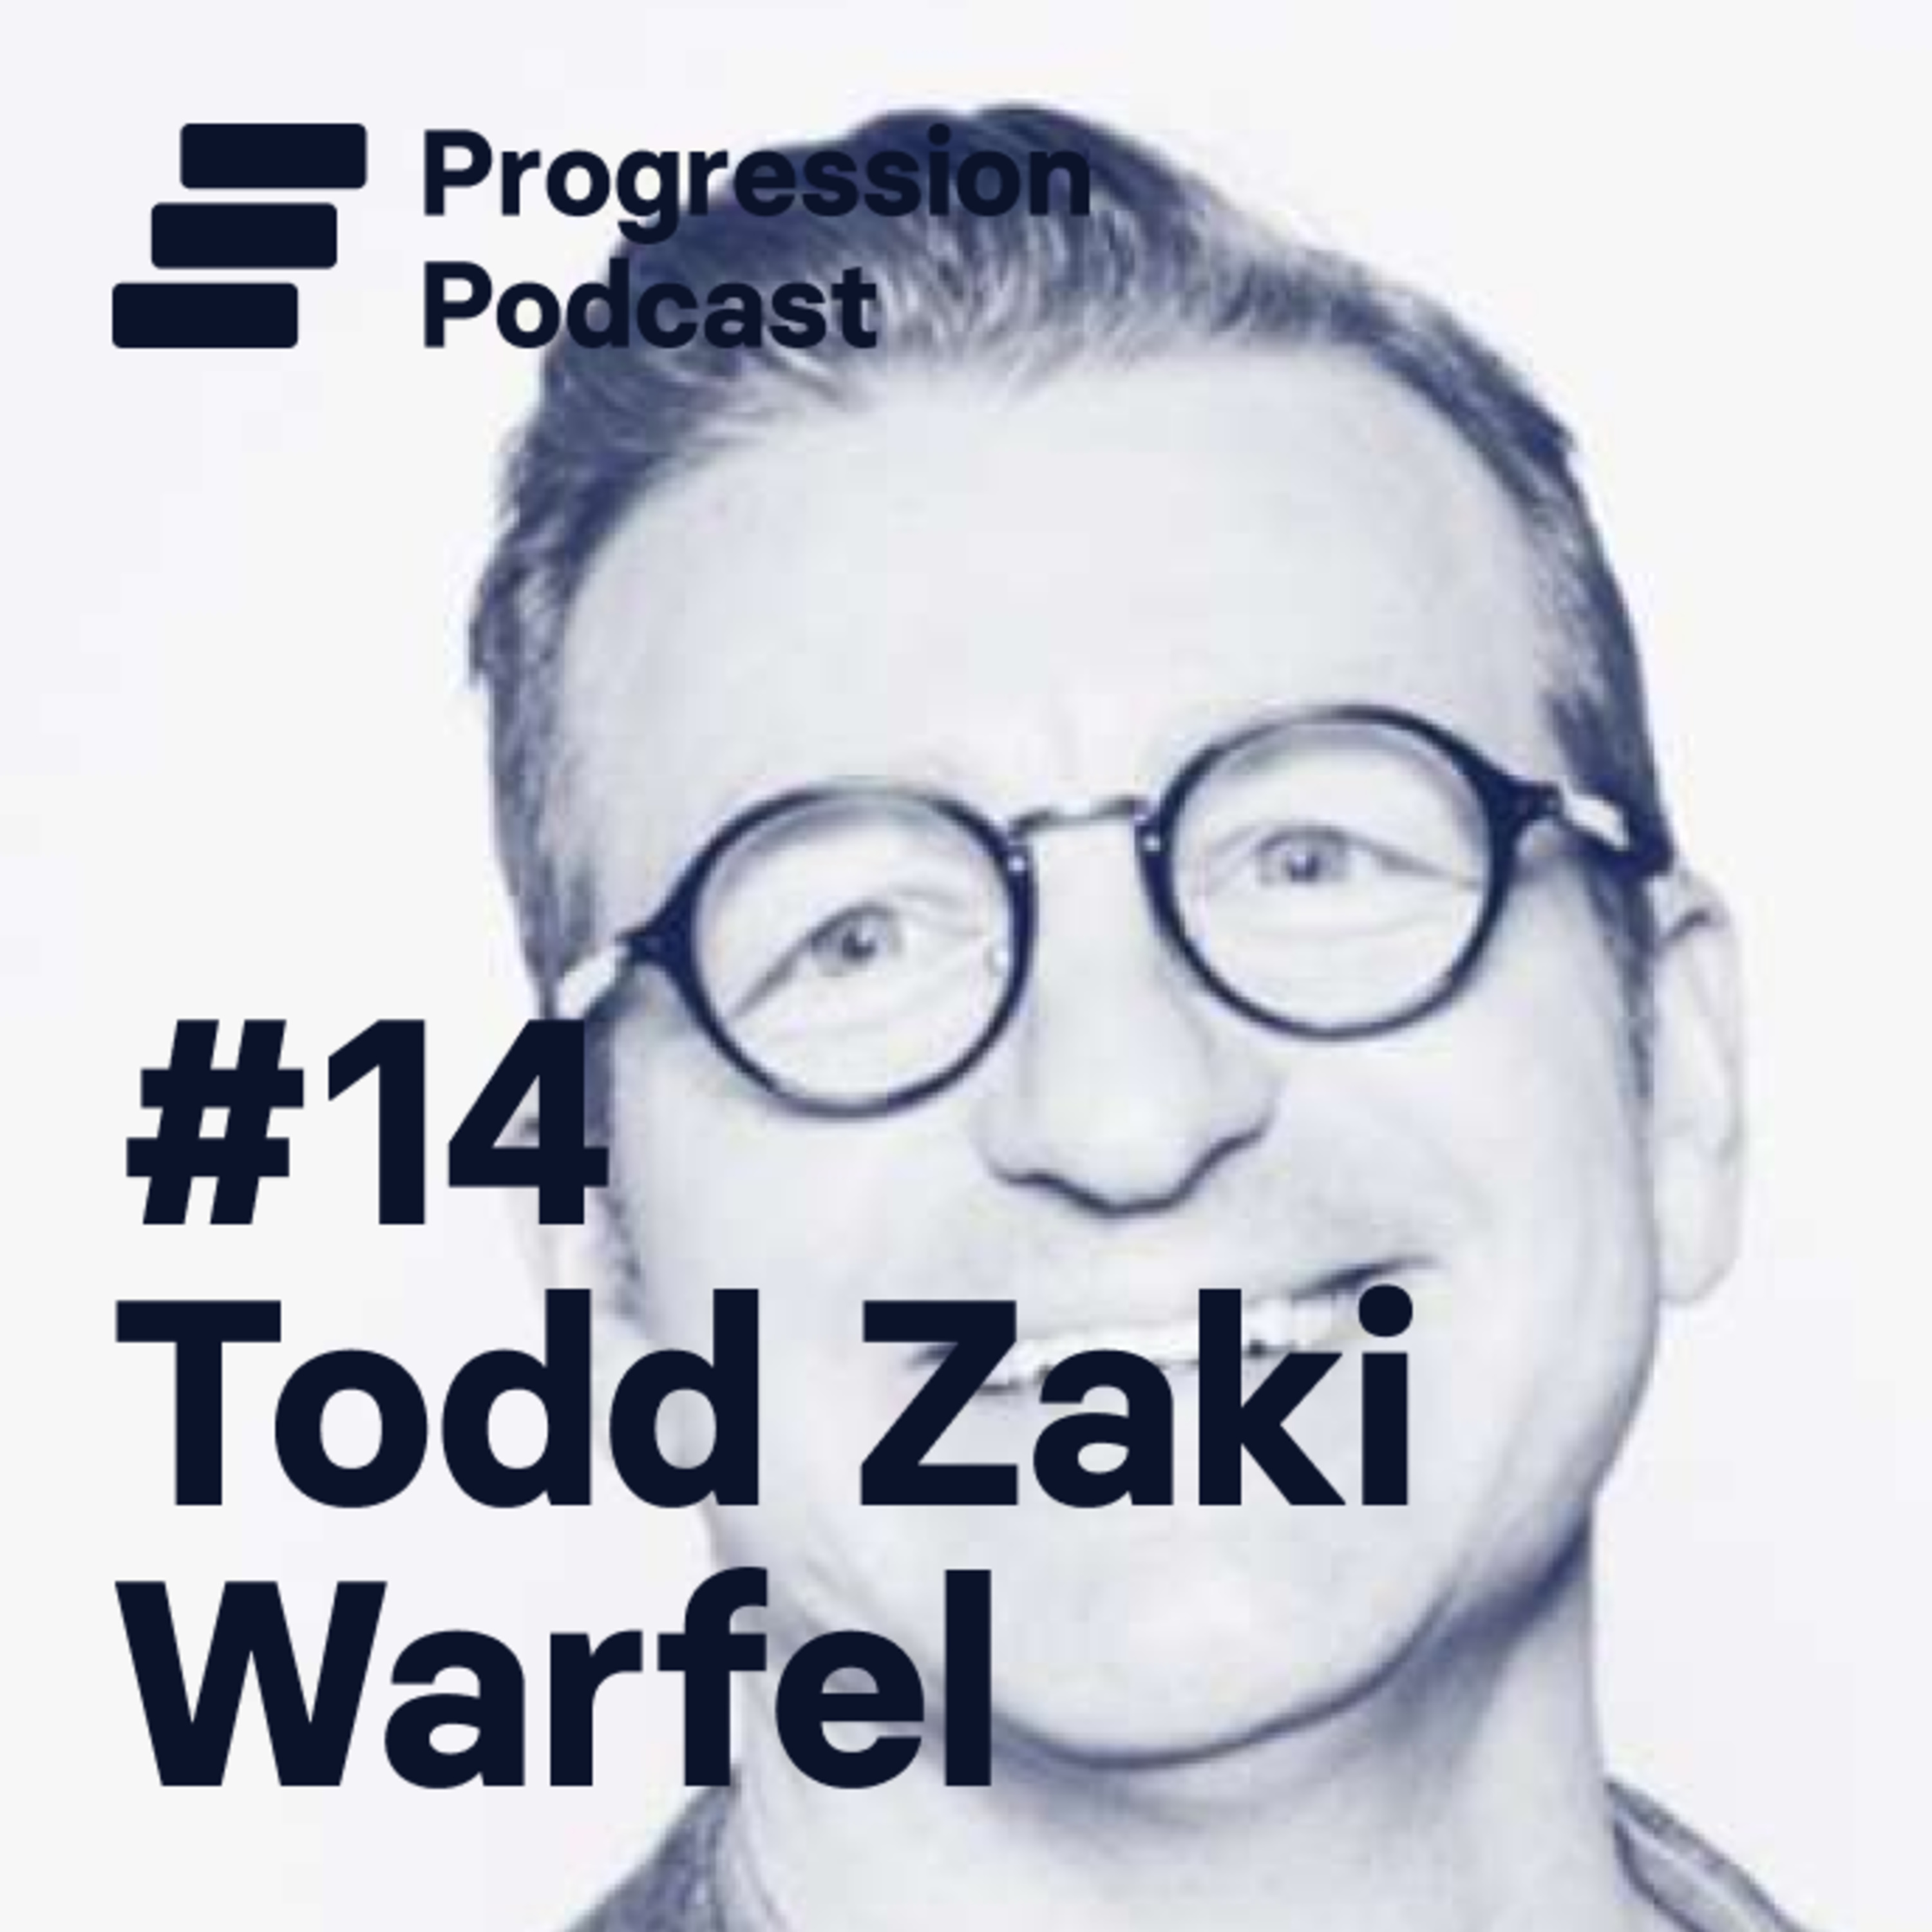 #14: Todd Zaki Warfel (Leadership coach, Design Career Index report) on frameworks and job satisfaction